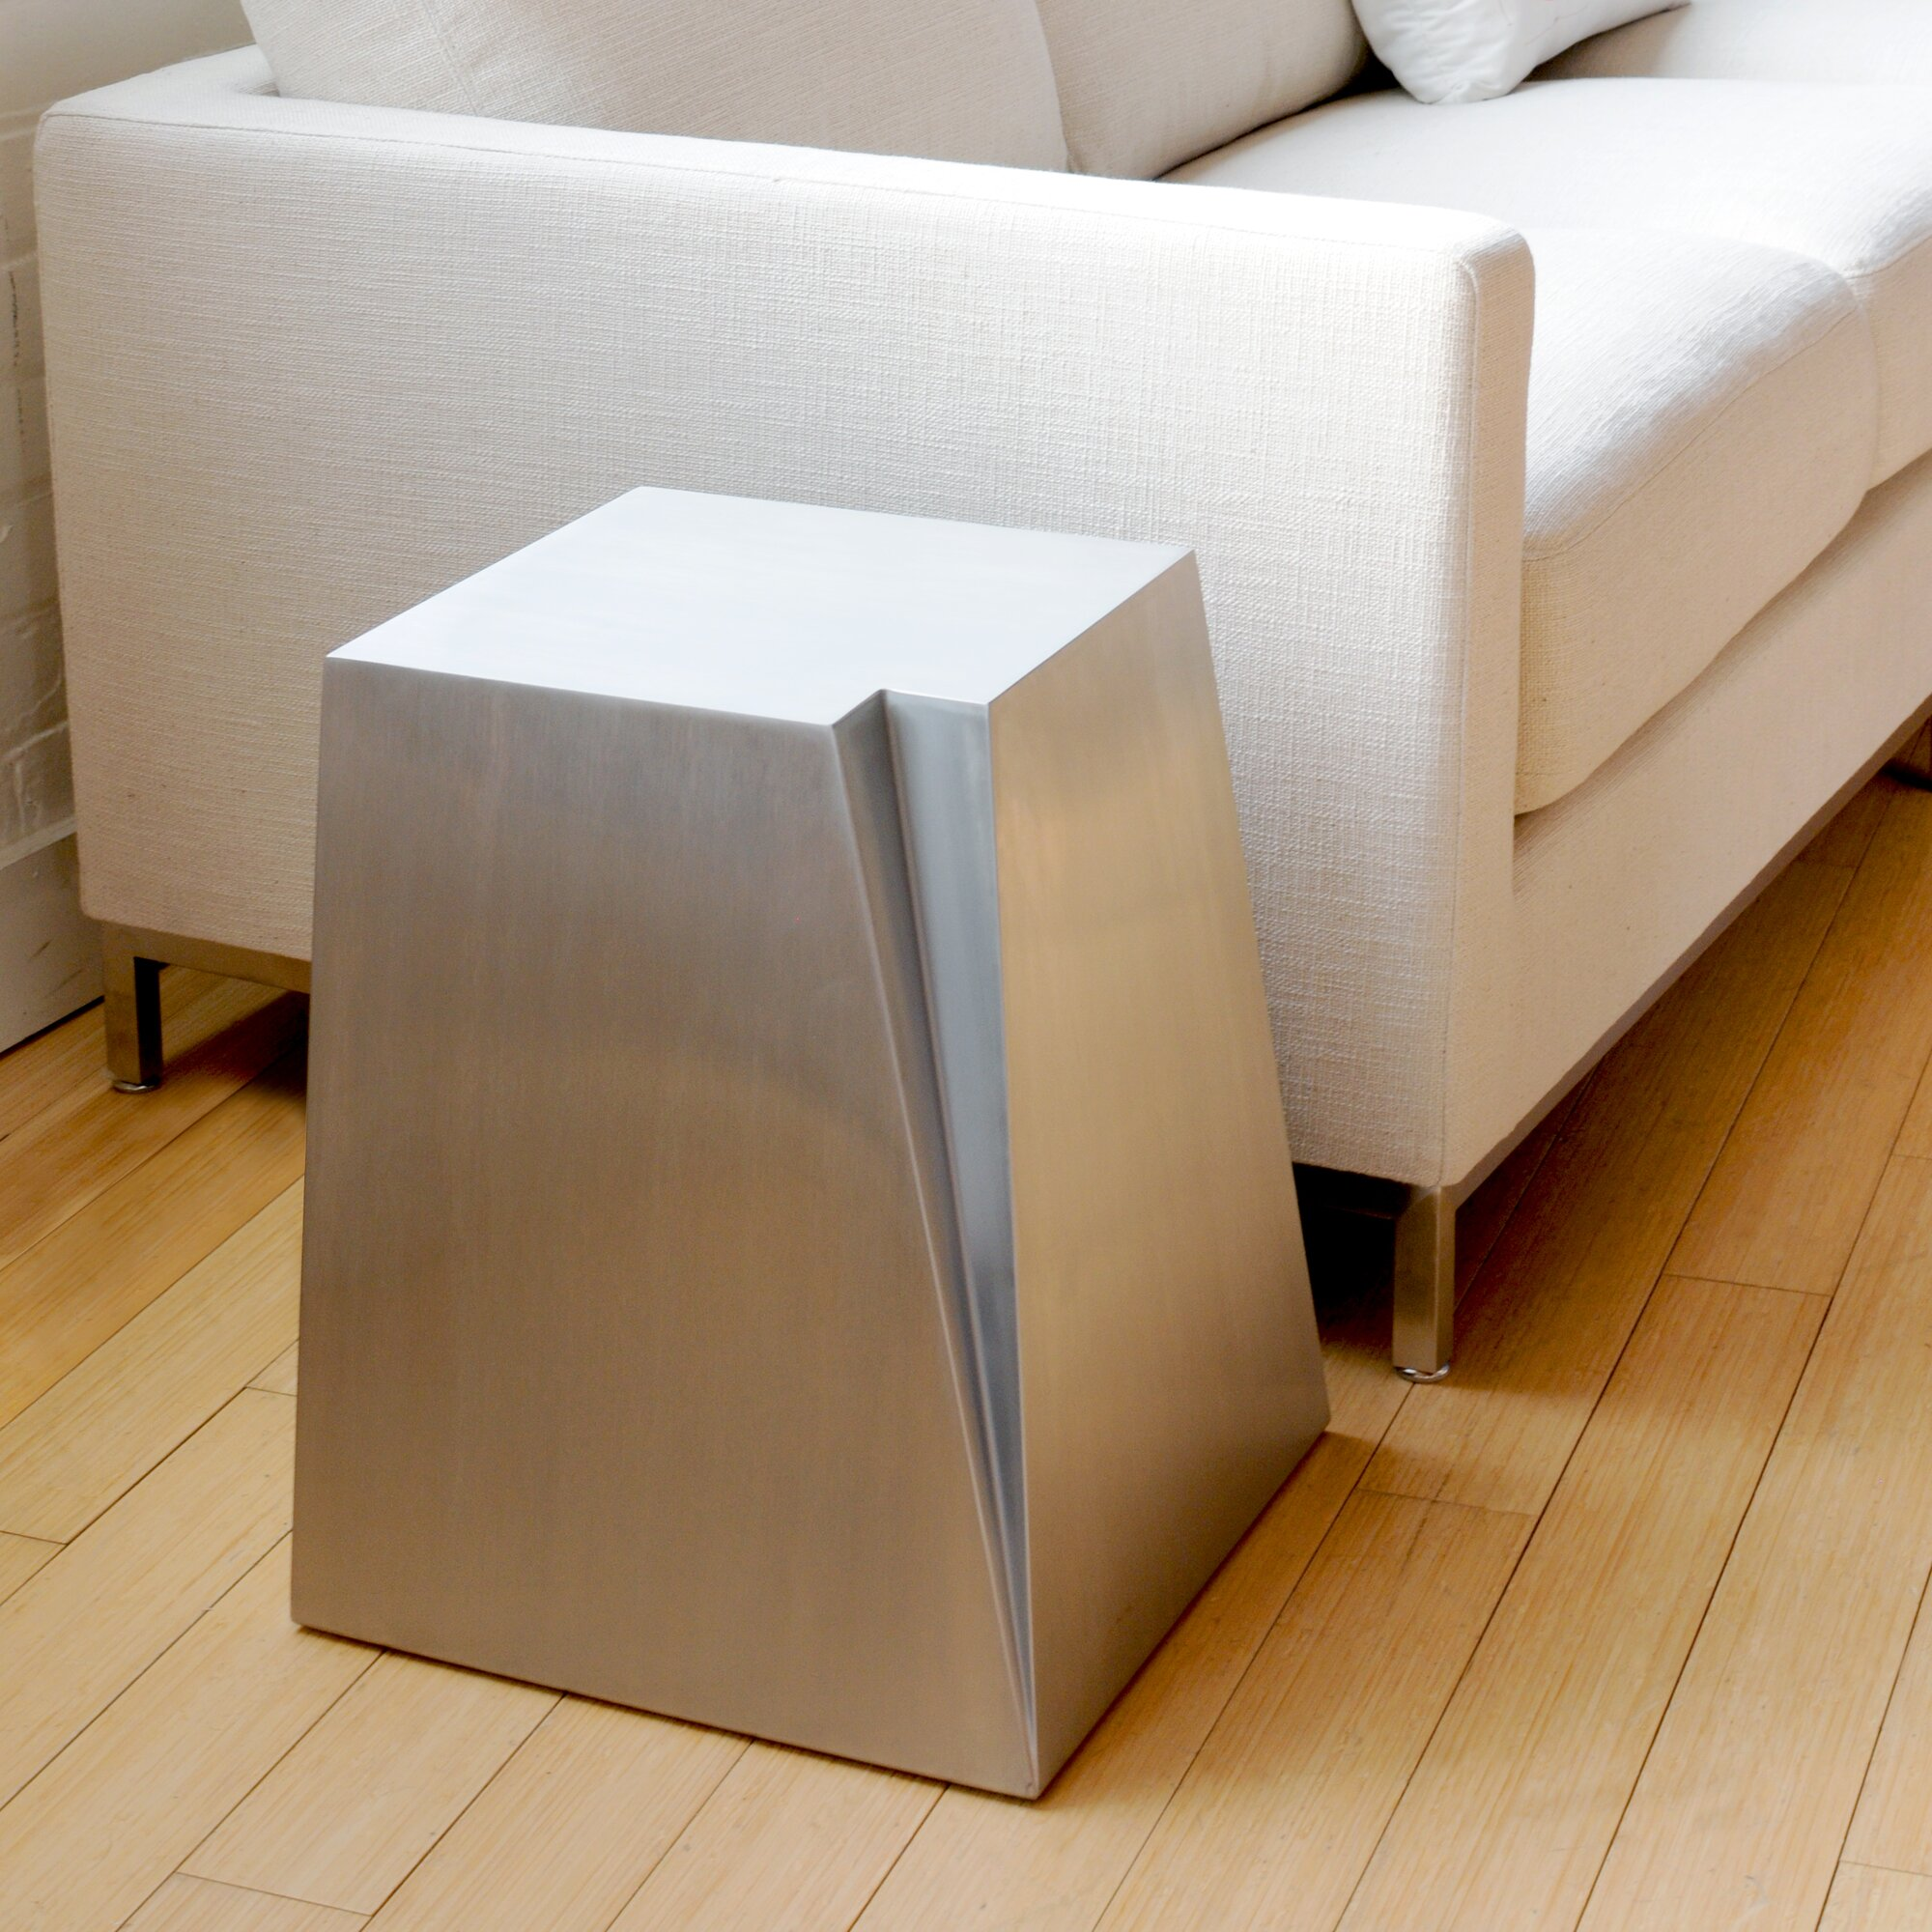 Glacier end table reviews allmodern for Regulation 85 table a